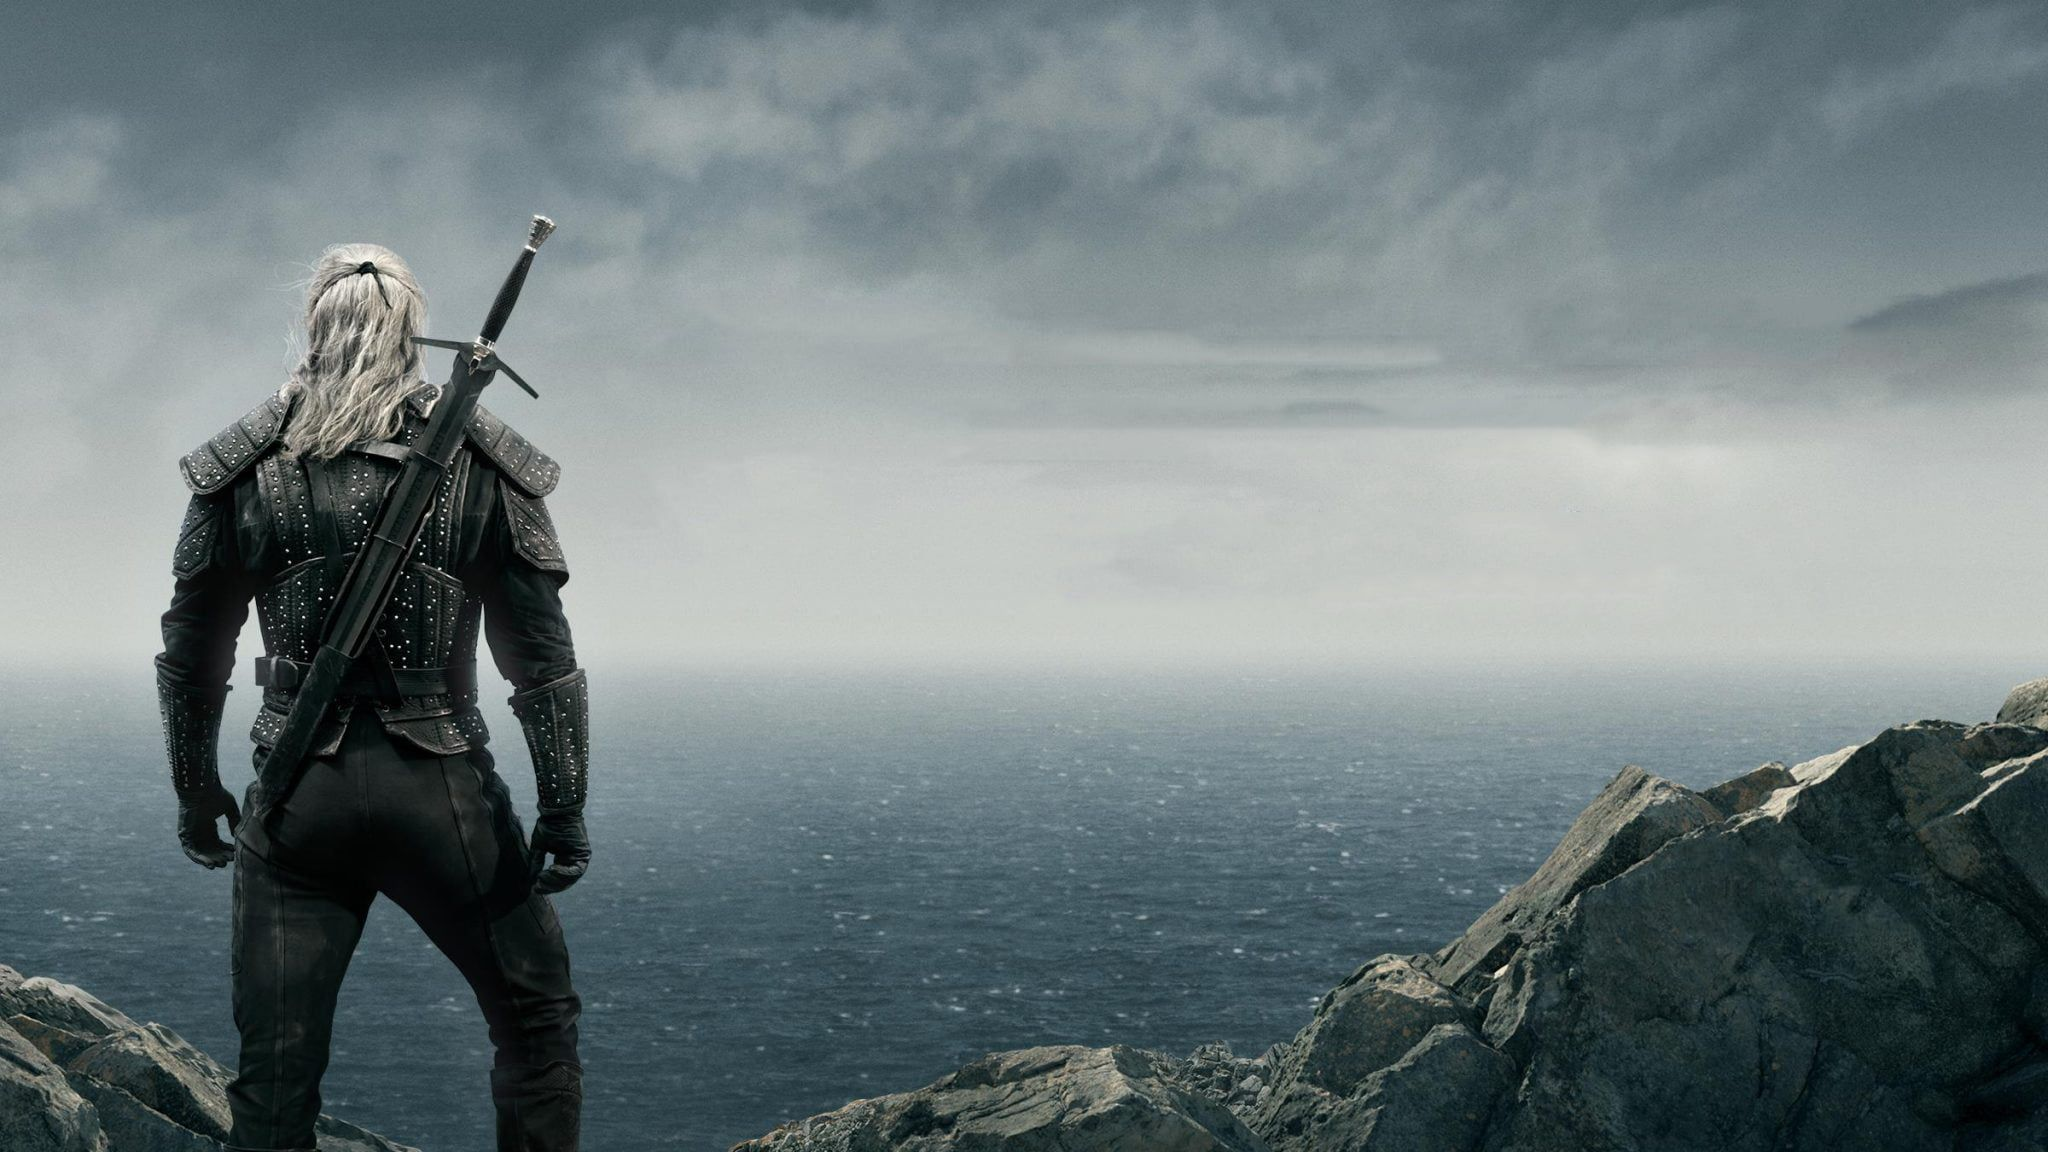 Henry Cavill Geralt Of Rivia The Witcher 1080p Wallpaper Hdwallpaper Desktop The Witcher Geralt Of Rivia Latest Hollywood Movies